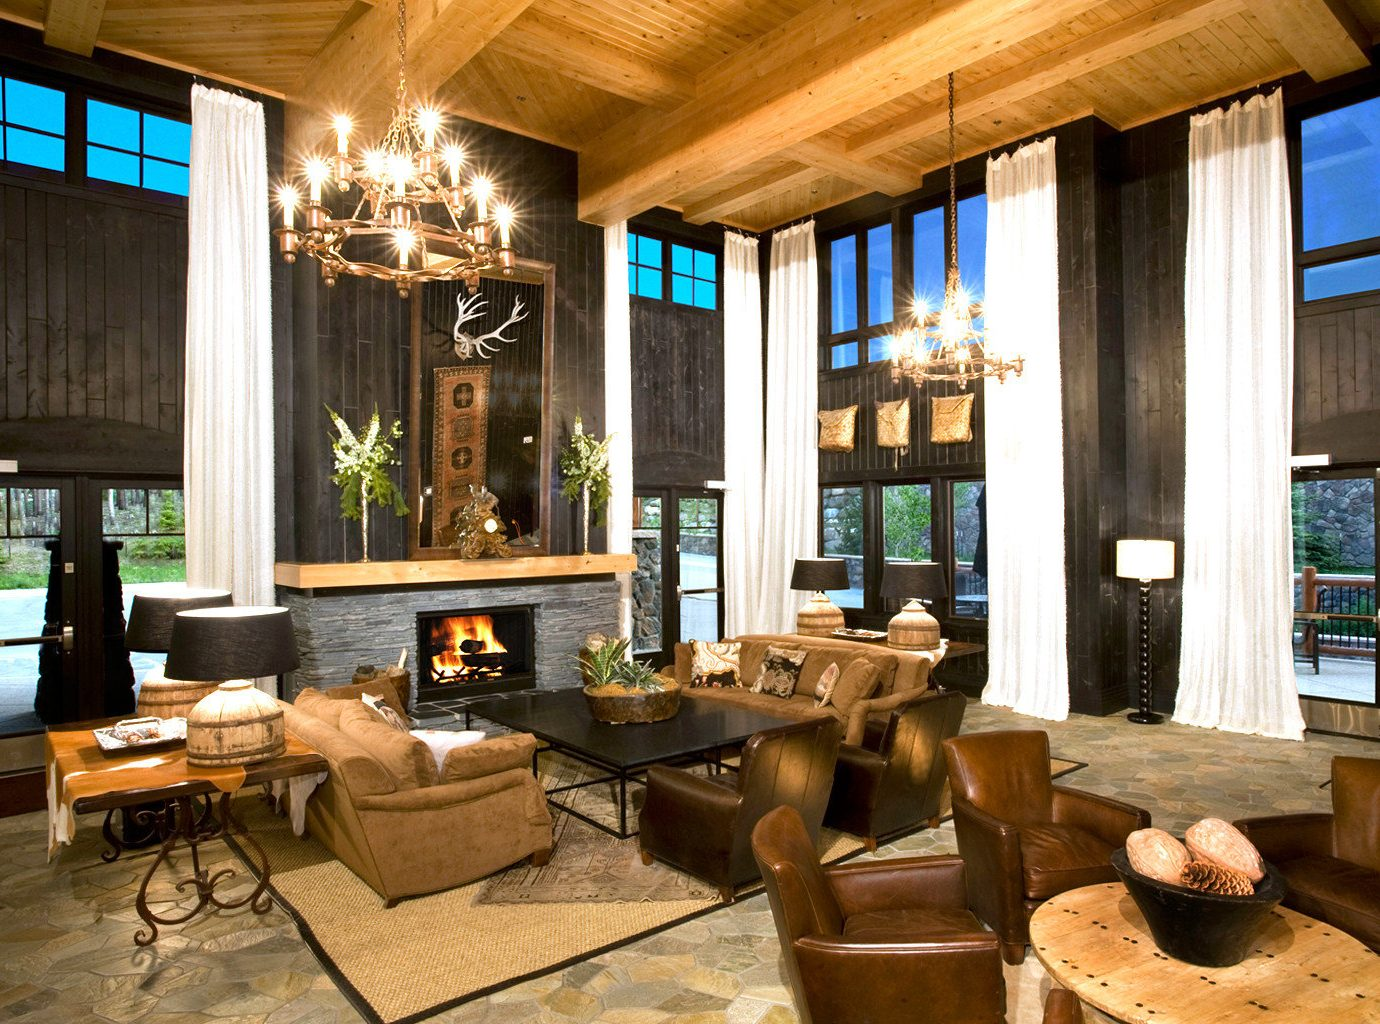 Fireplace Lobby Lodge Lounge Outdoor Activities Romantic Ski Trip Ideas window table indoor property room estate ceiling living room home interior design wood real estate Resort restaurant mansion Design condominium Villa furniture